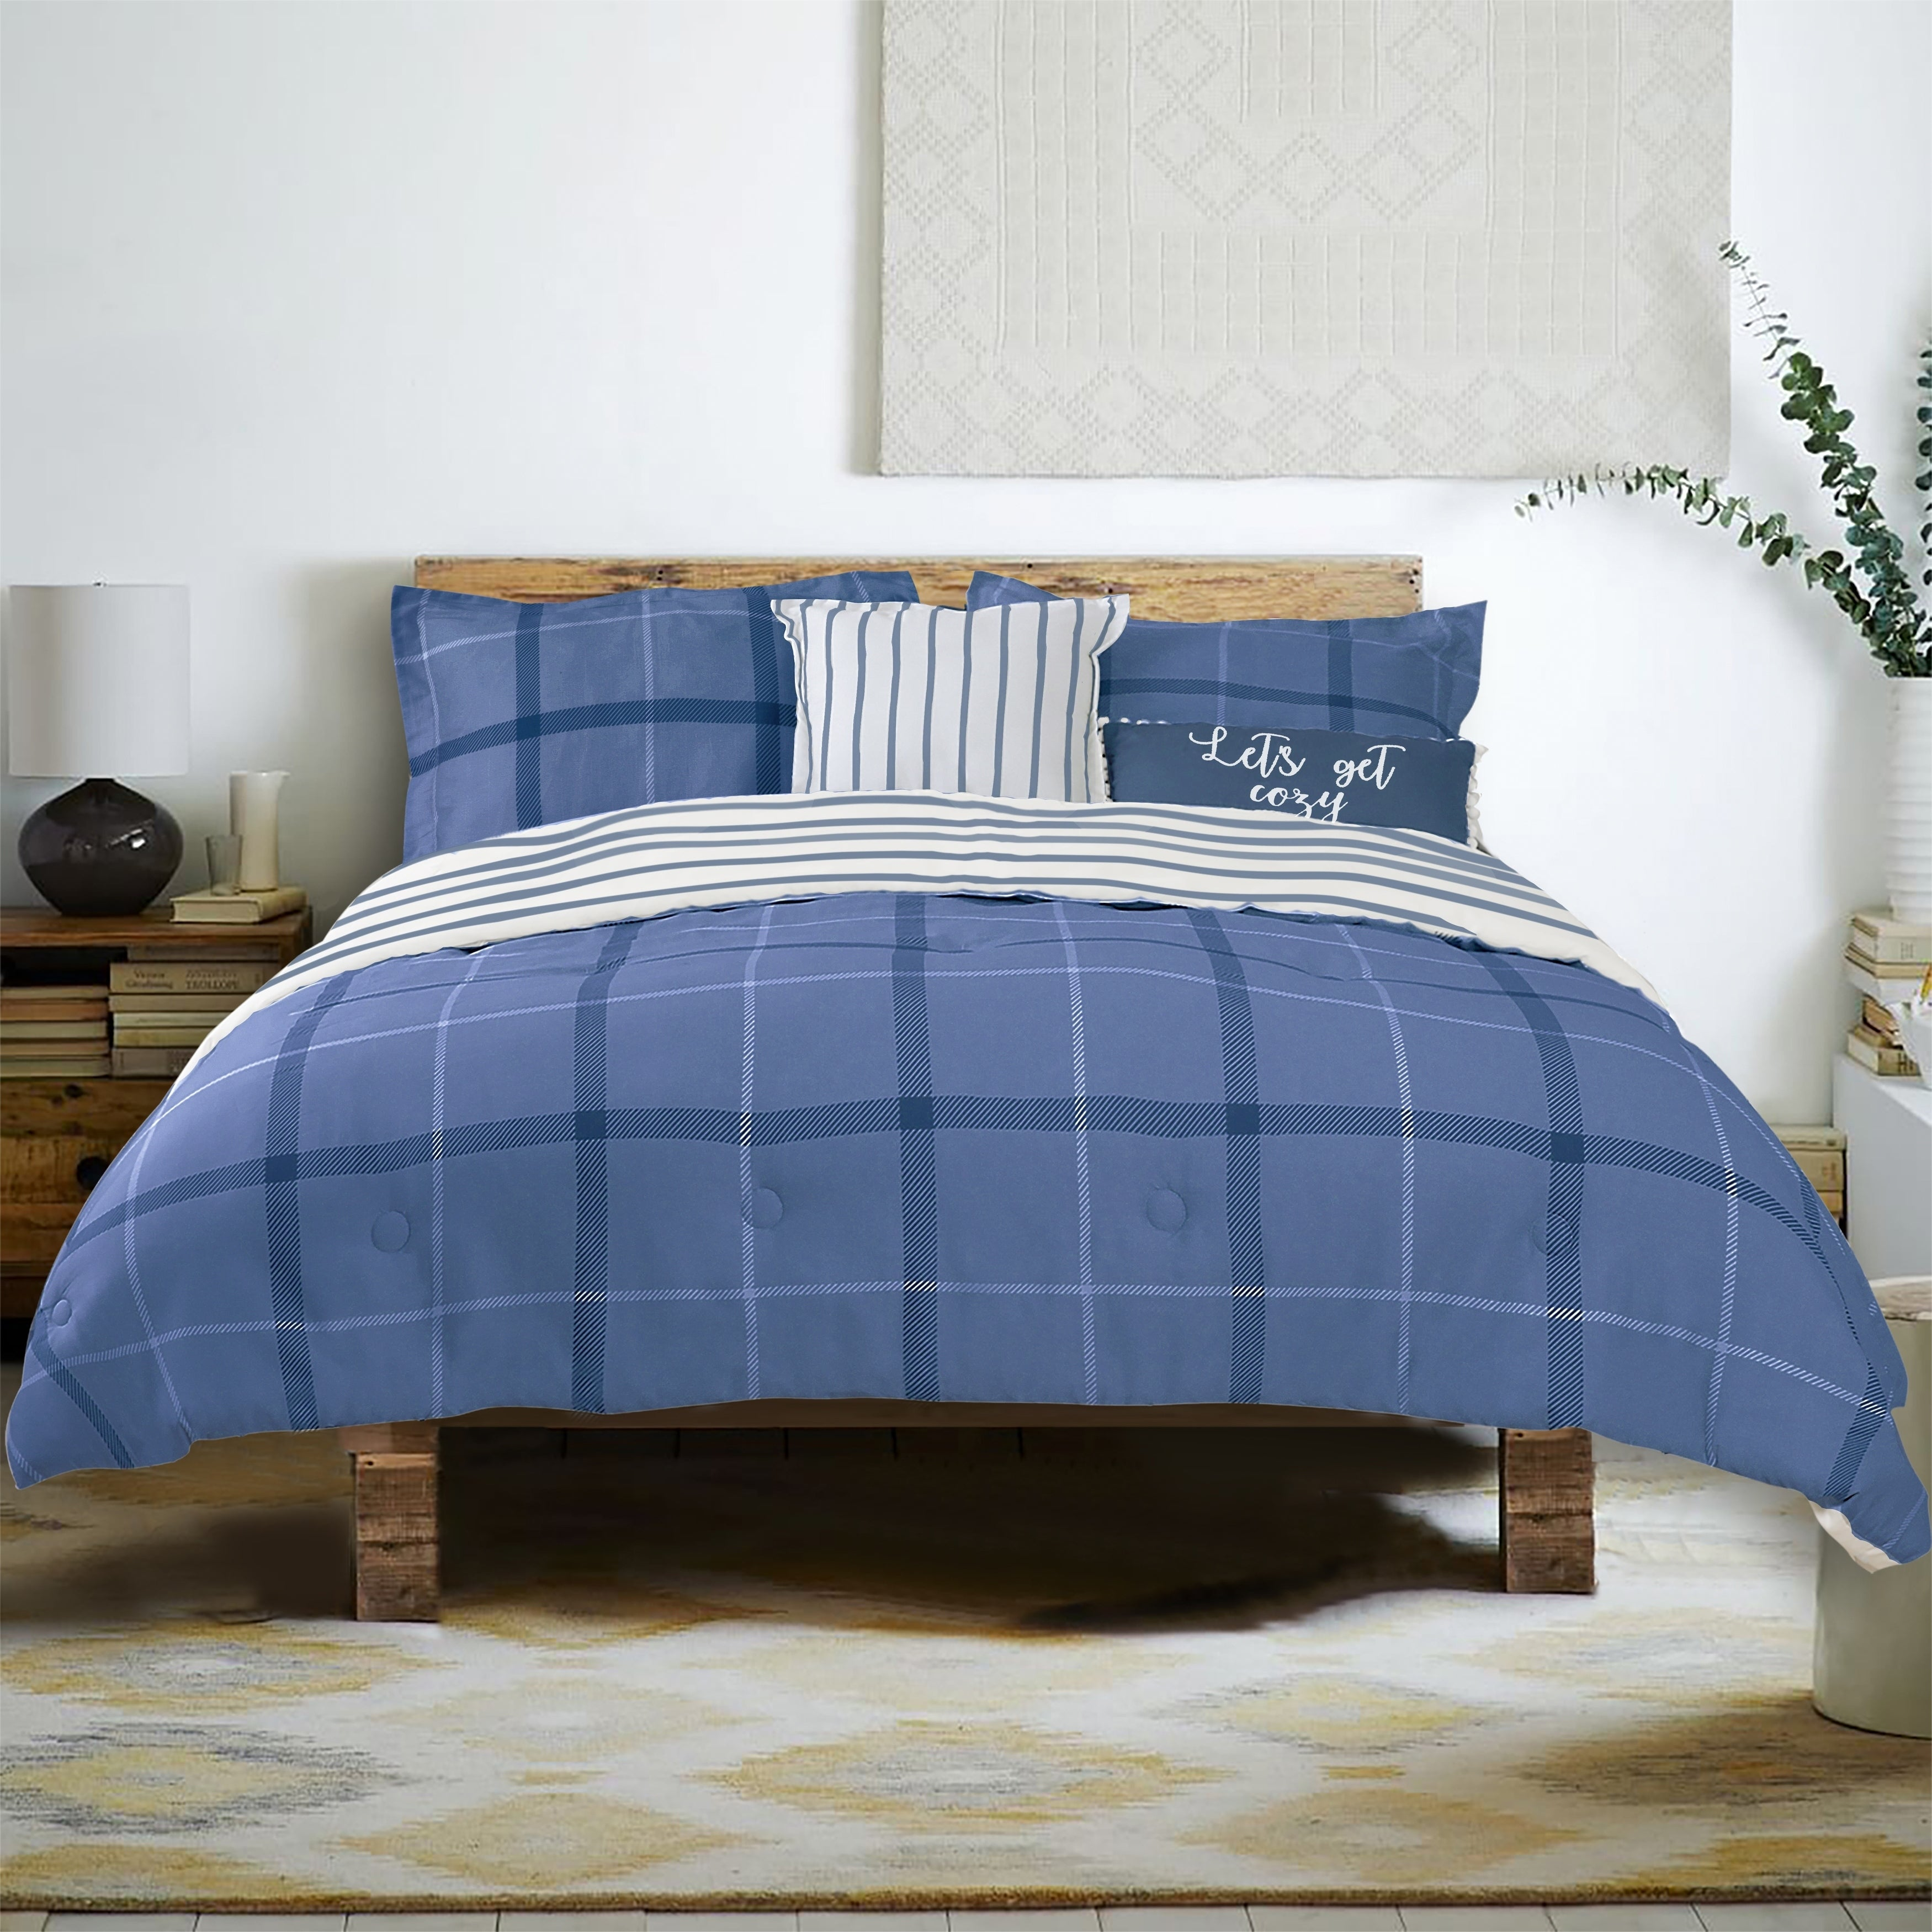 Farmhouse Living Brand Plaid 5 Piece Cotton Comforter Set 1 Comforter 2 Shams 2 Accent Pillows Three Color Choices Overstock 29774919